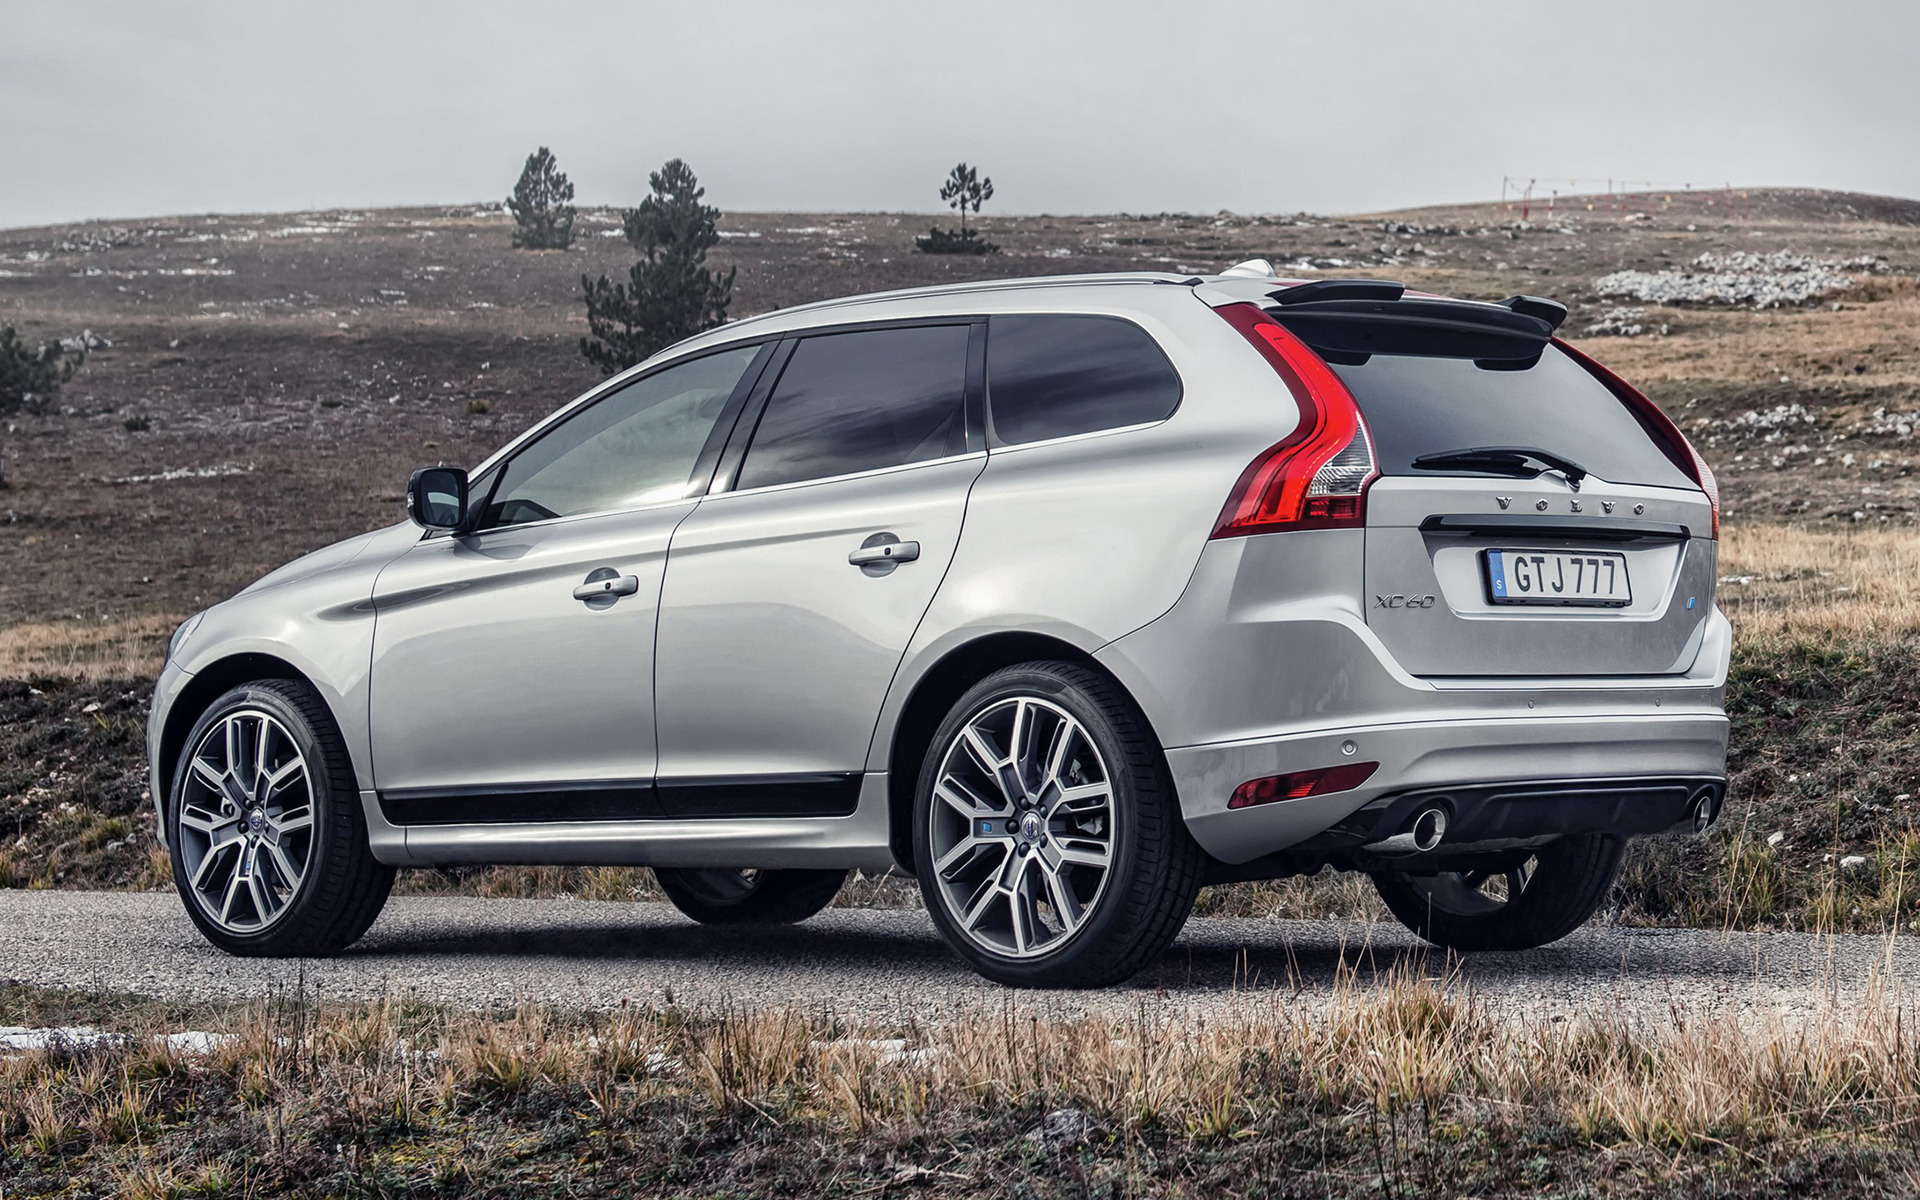 Volvo XC60 Polestar Parts (2016) Wallpapers and HD Images - Car Pixel